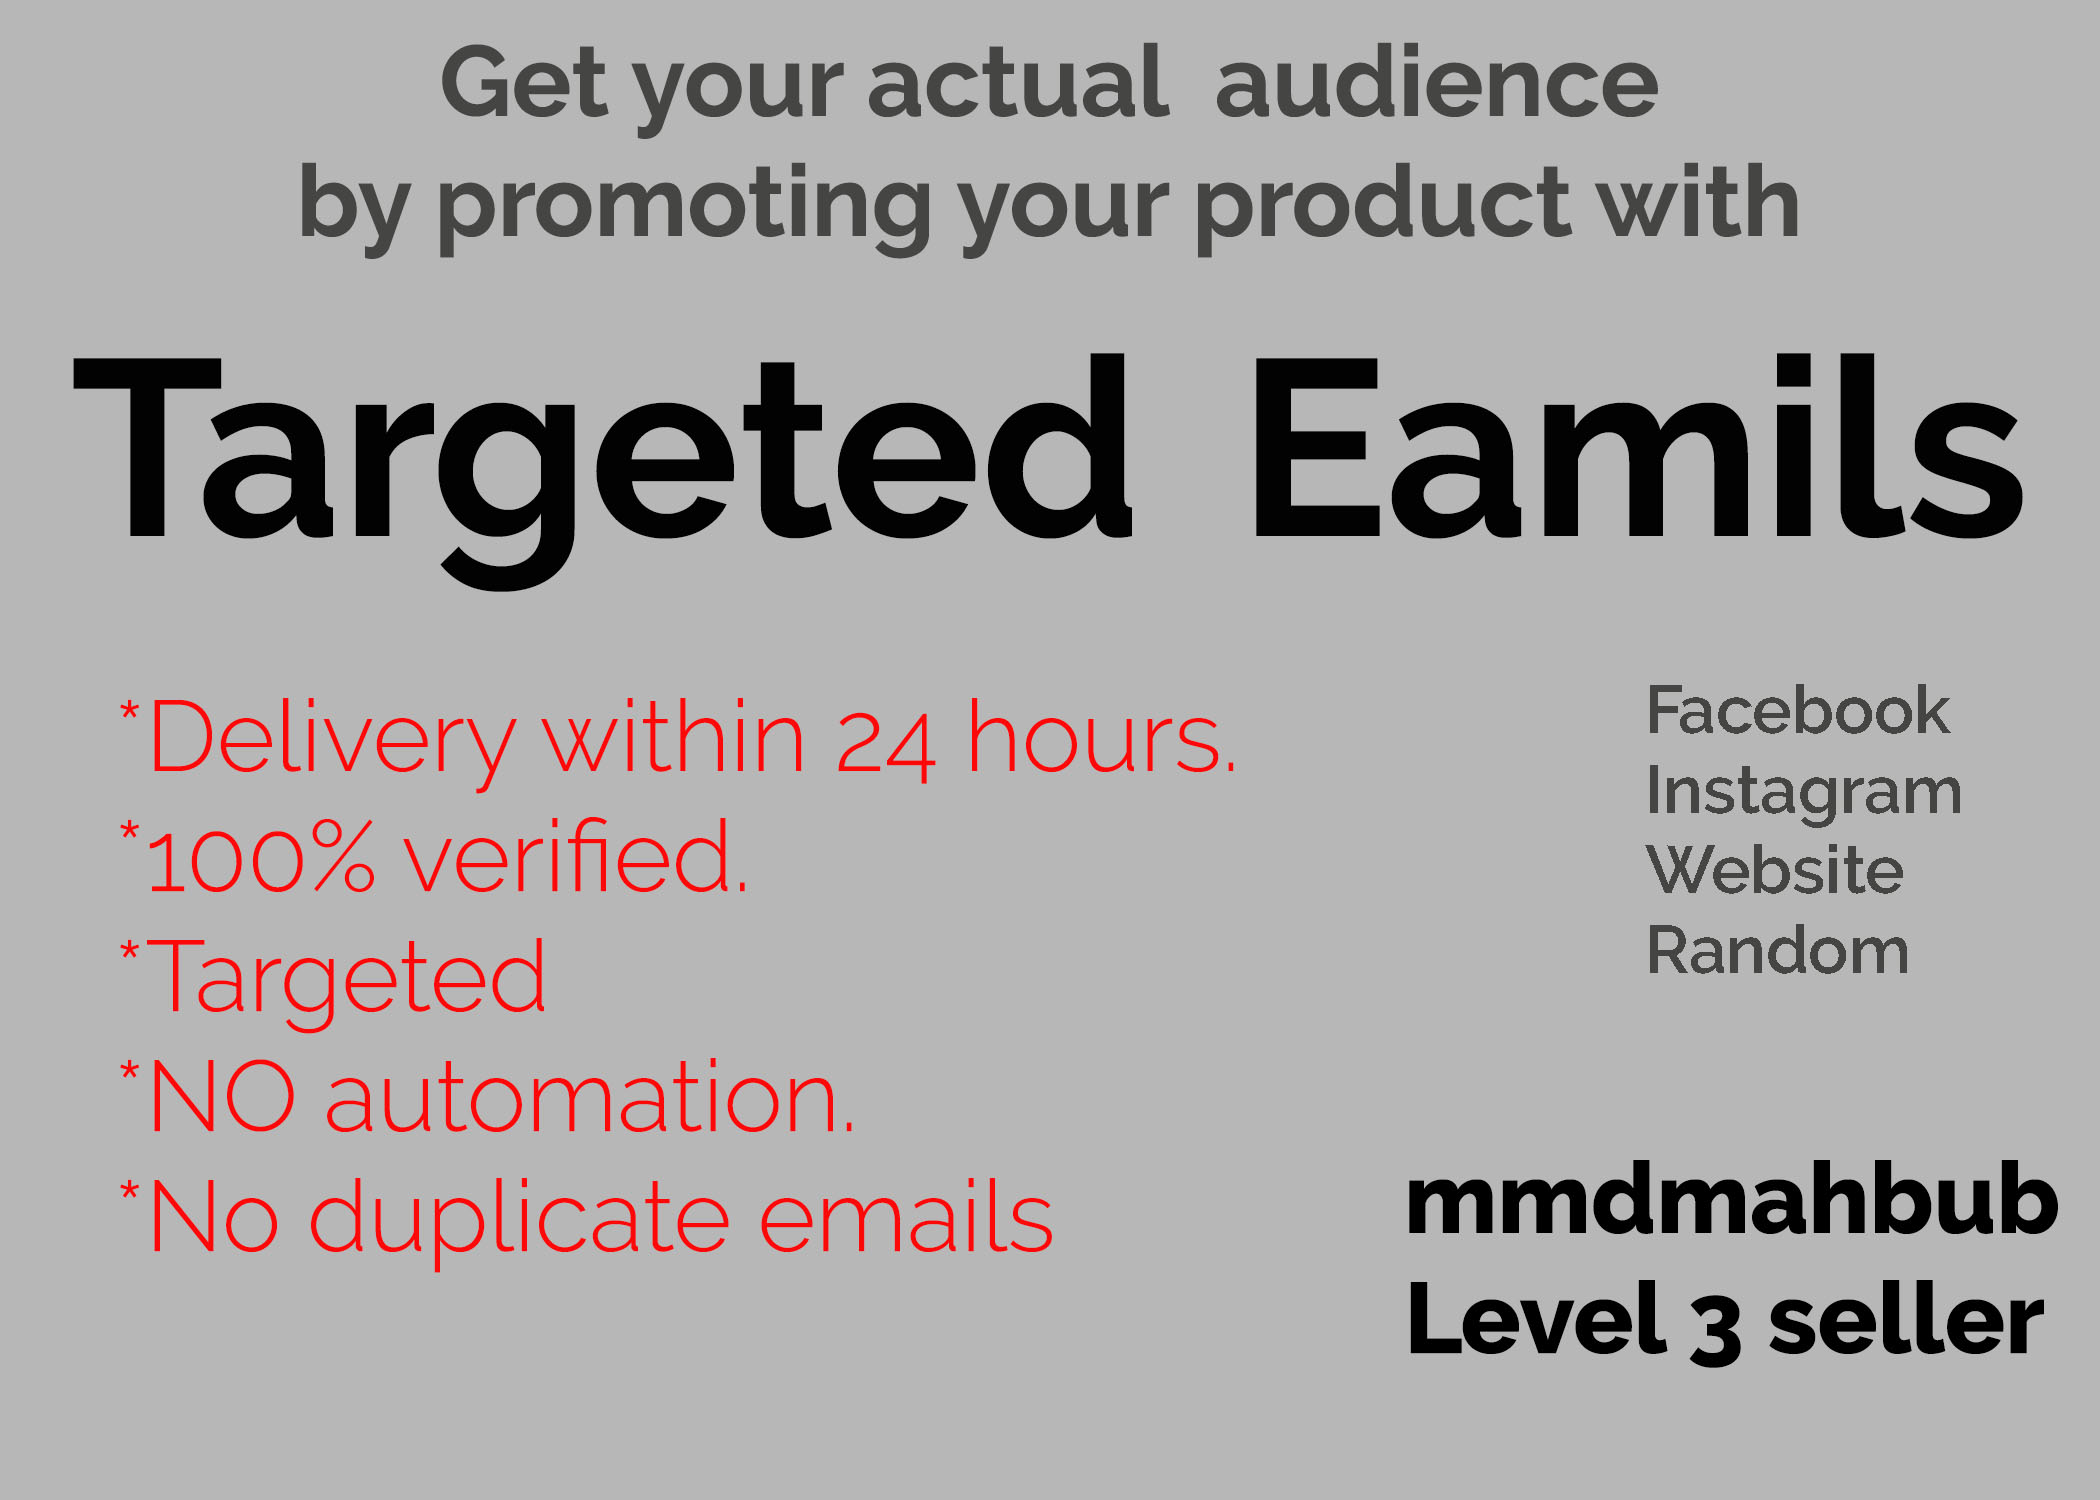 Get 50 targeted, genuine and verified emails leads within 24 hours